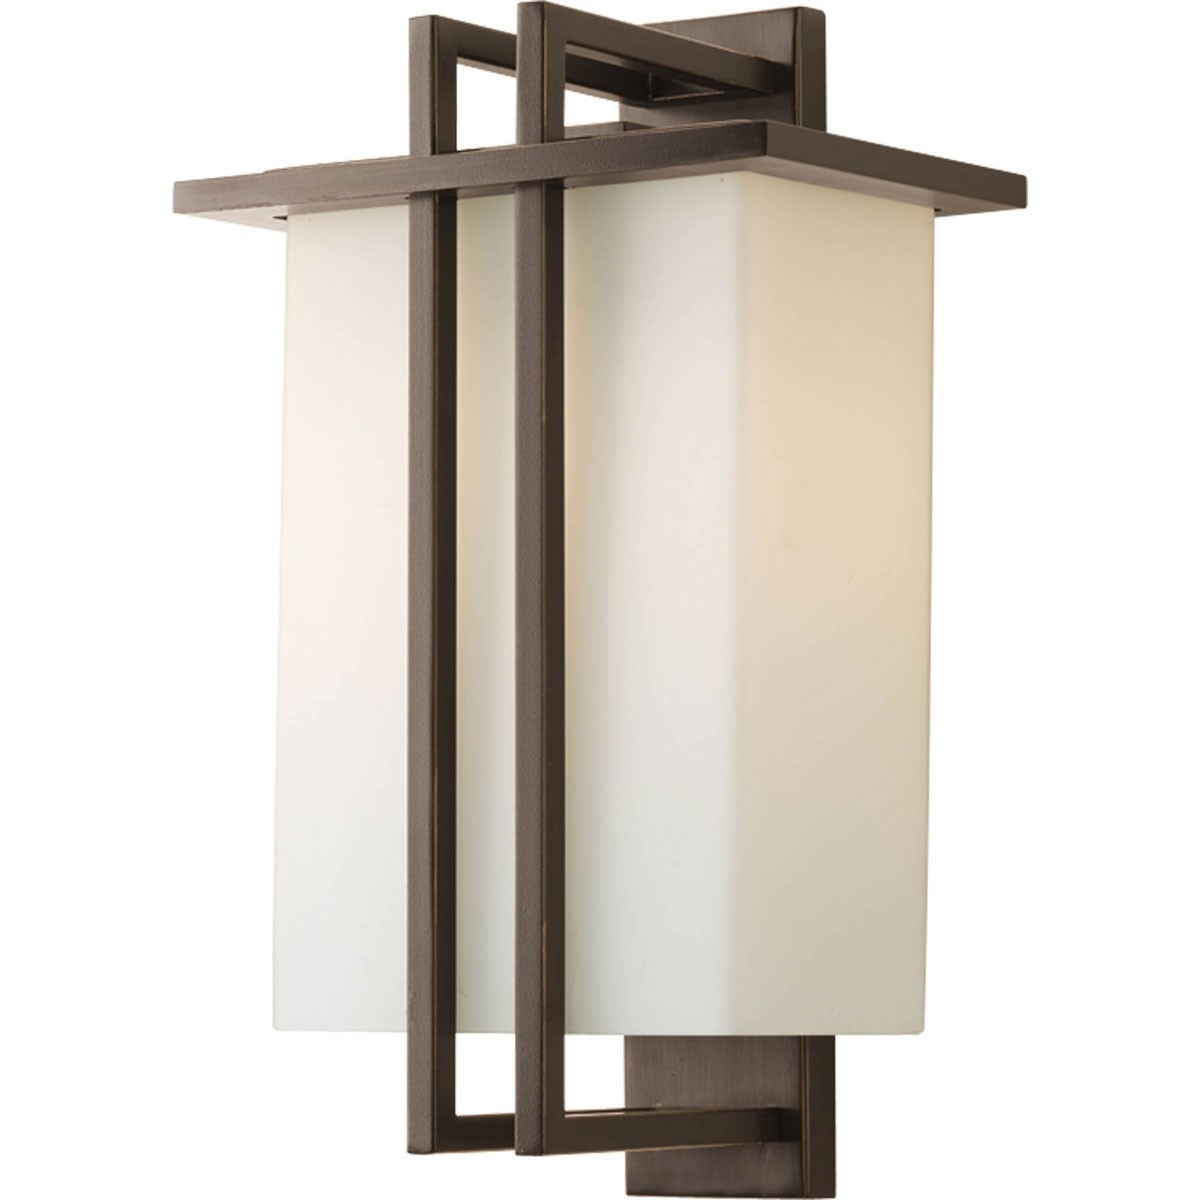 Latest Outdoor Wall Lantern Lights In One Lamp Outdoor Medium Wall Lantern Light Fixture – Progress (View 9 of 20)